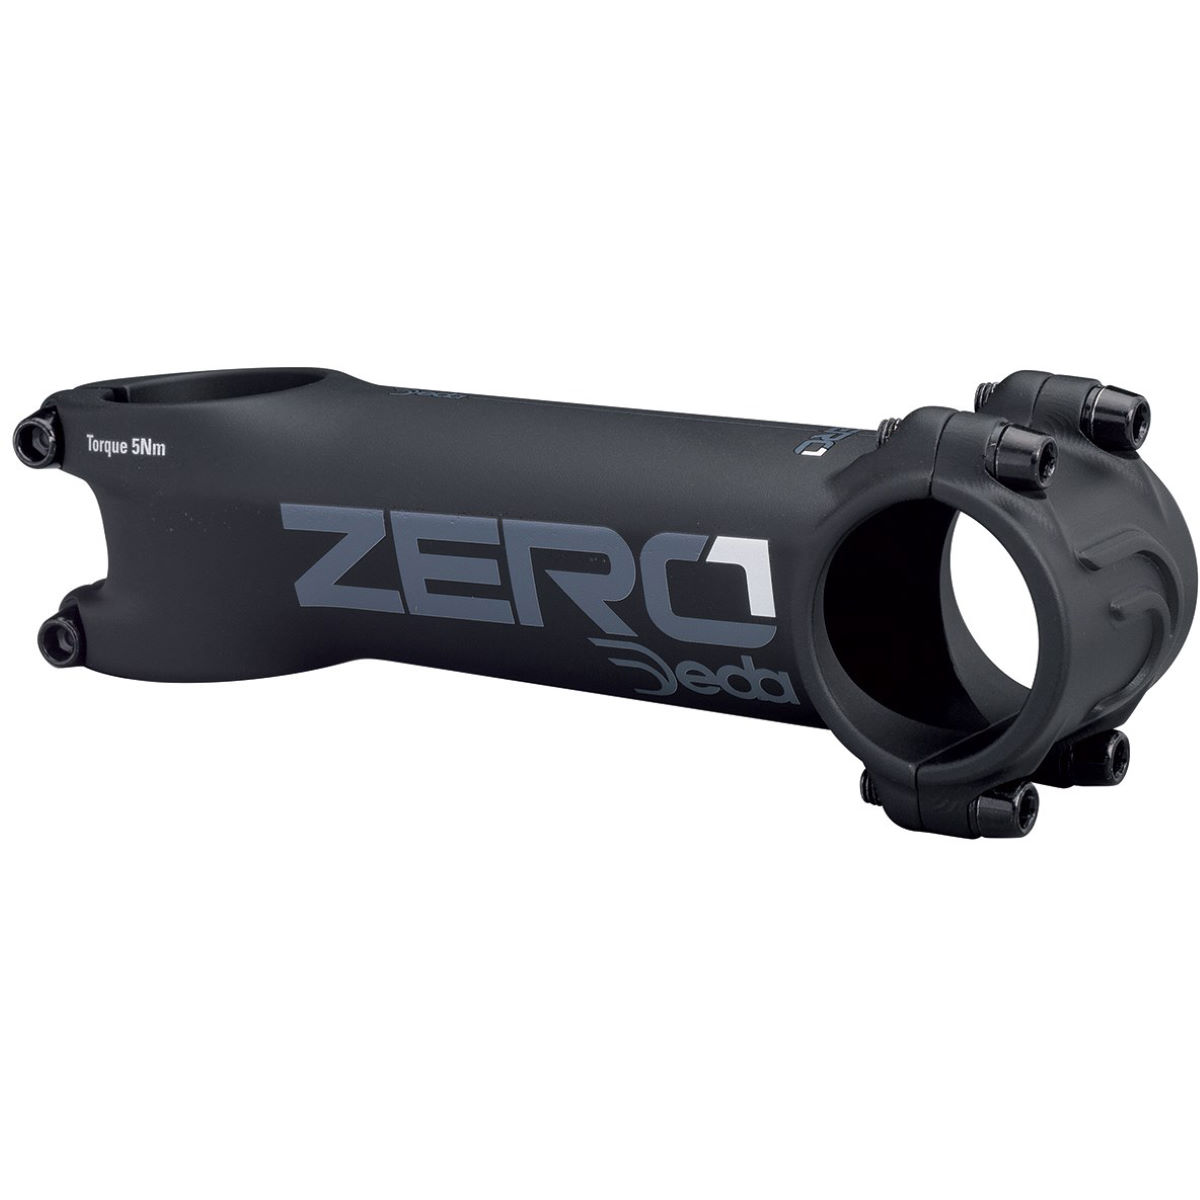 Deda Zero1 Stem - 70mm Black on Black | Stems